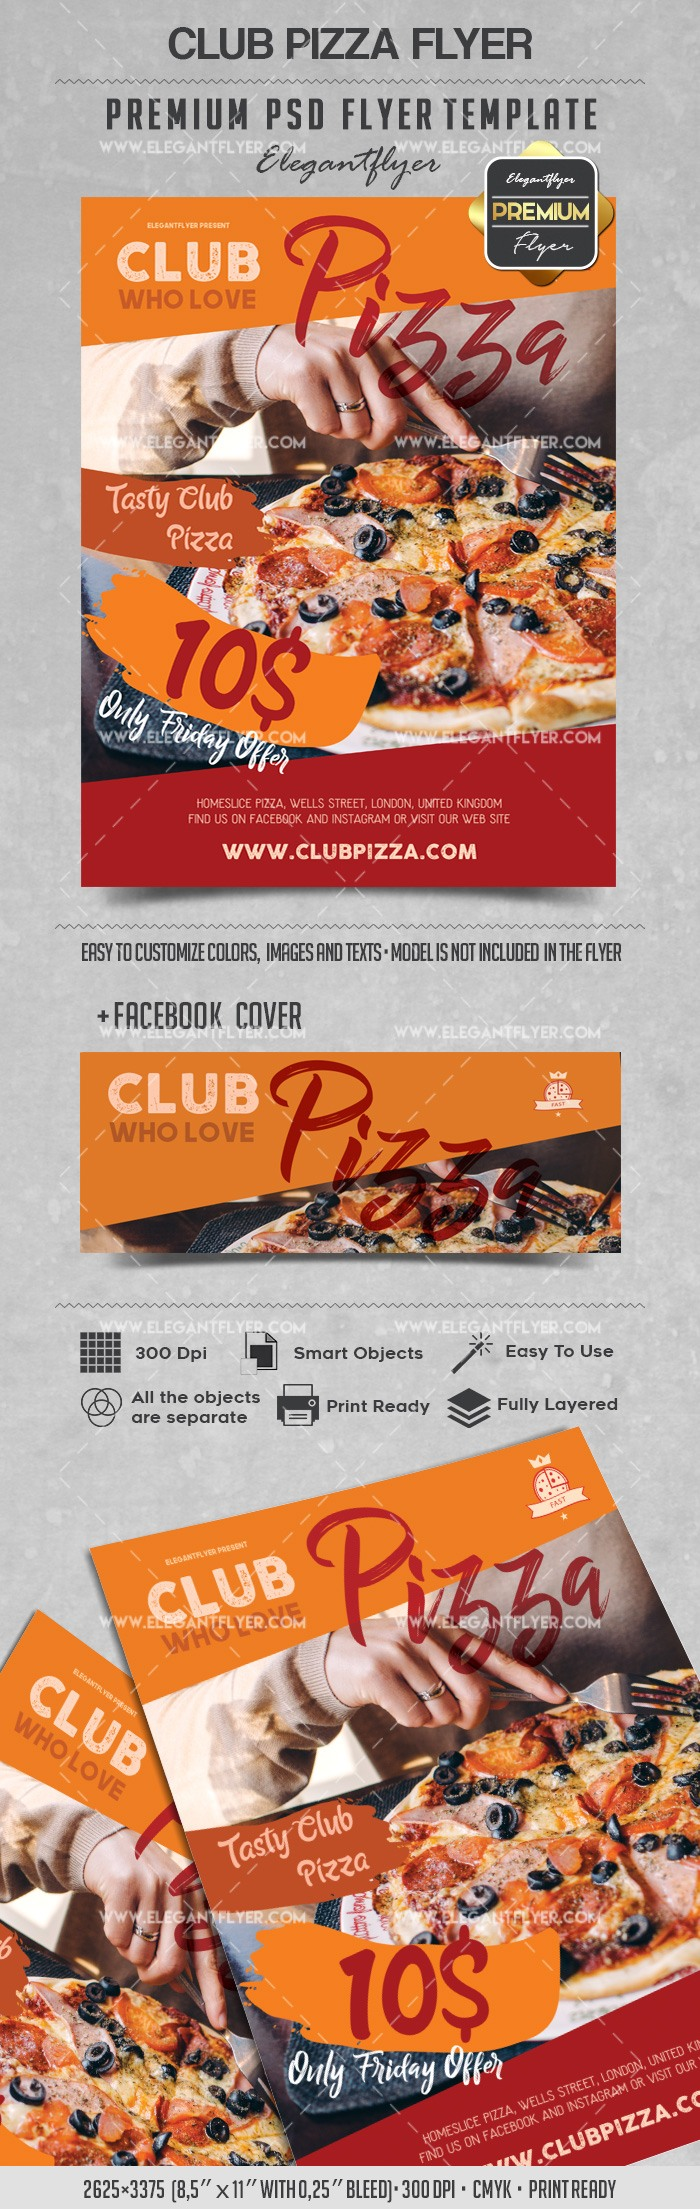 club pizza flyer psd template by elegantflyer. Black Bedroom Furniture Sets. Home Design Ideas